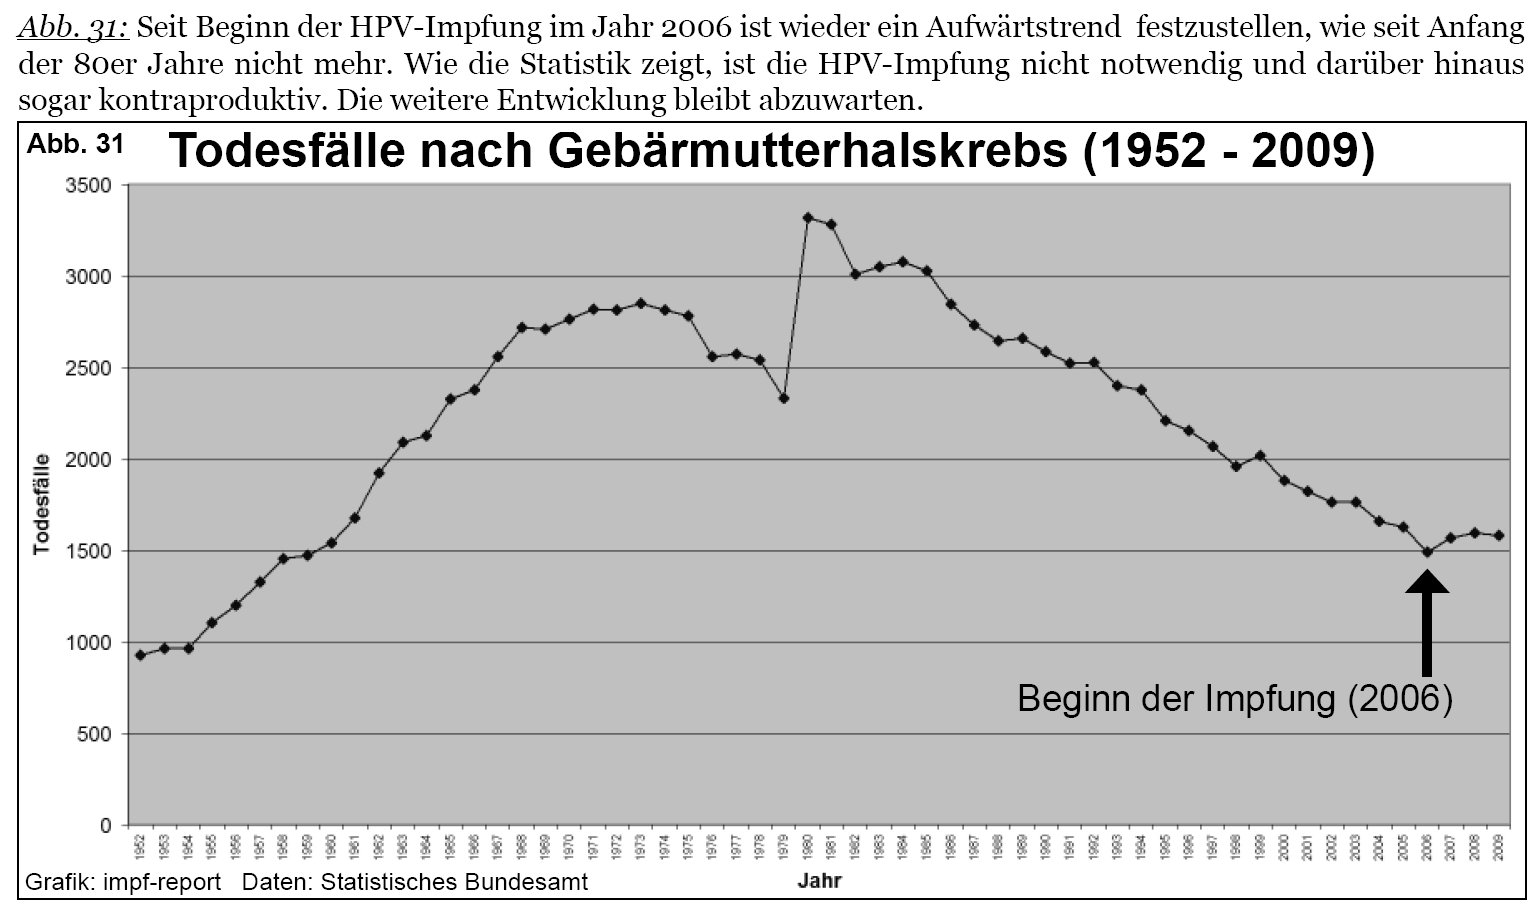 hpv impfung jungen todesfalle